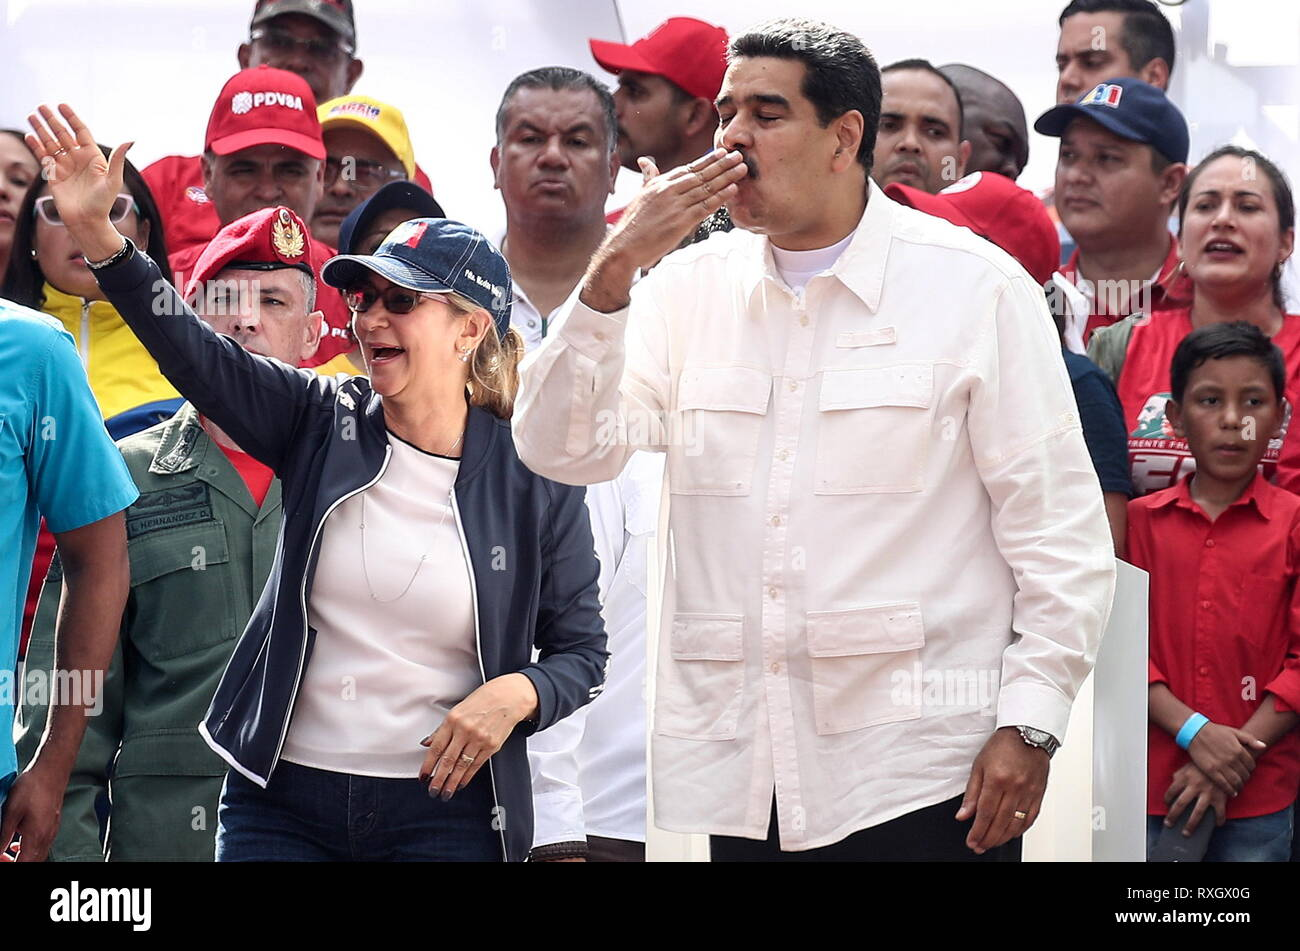 Caracas, Venezuela. 09th Mar, 2019. CARACAS, VENEZUELA - MARCH 10, 2019: Venezuela's President Nicolas Maduro (R) and his wife Cilia Flores during a rally marking Anti-imperialism Day by the Miraflores Palace. Valery Sharifulin/TASS Credit: ITAR-TASS News Agency/Alamy Live News - Stock Image